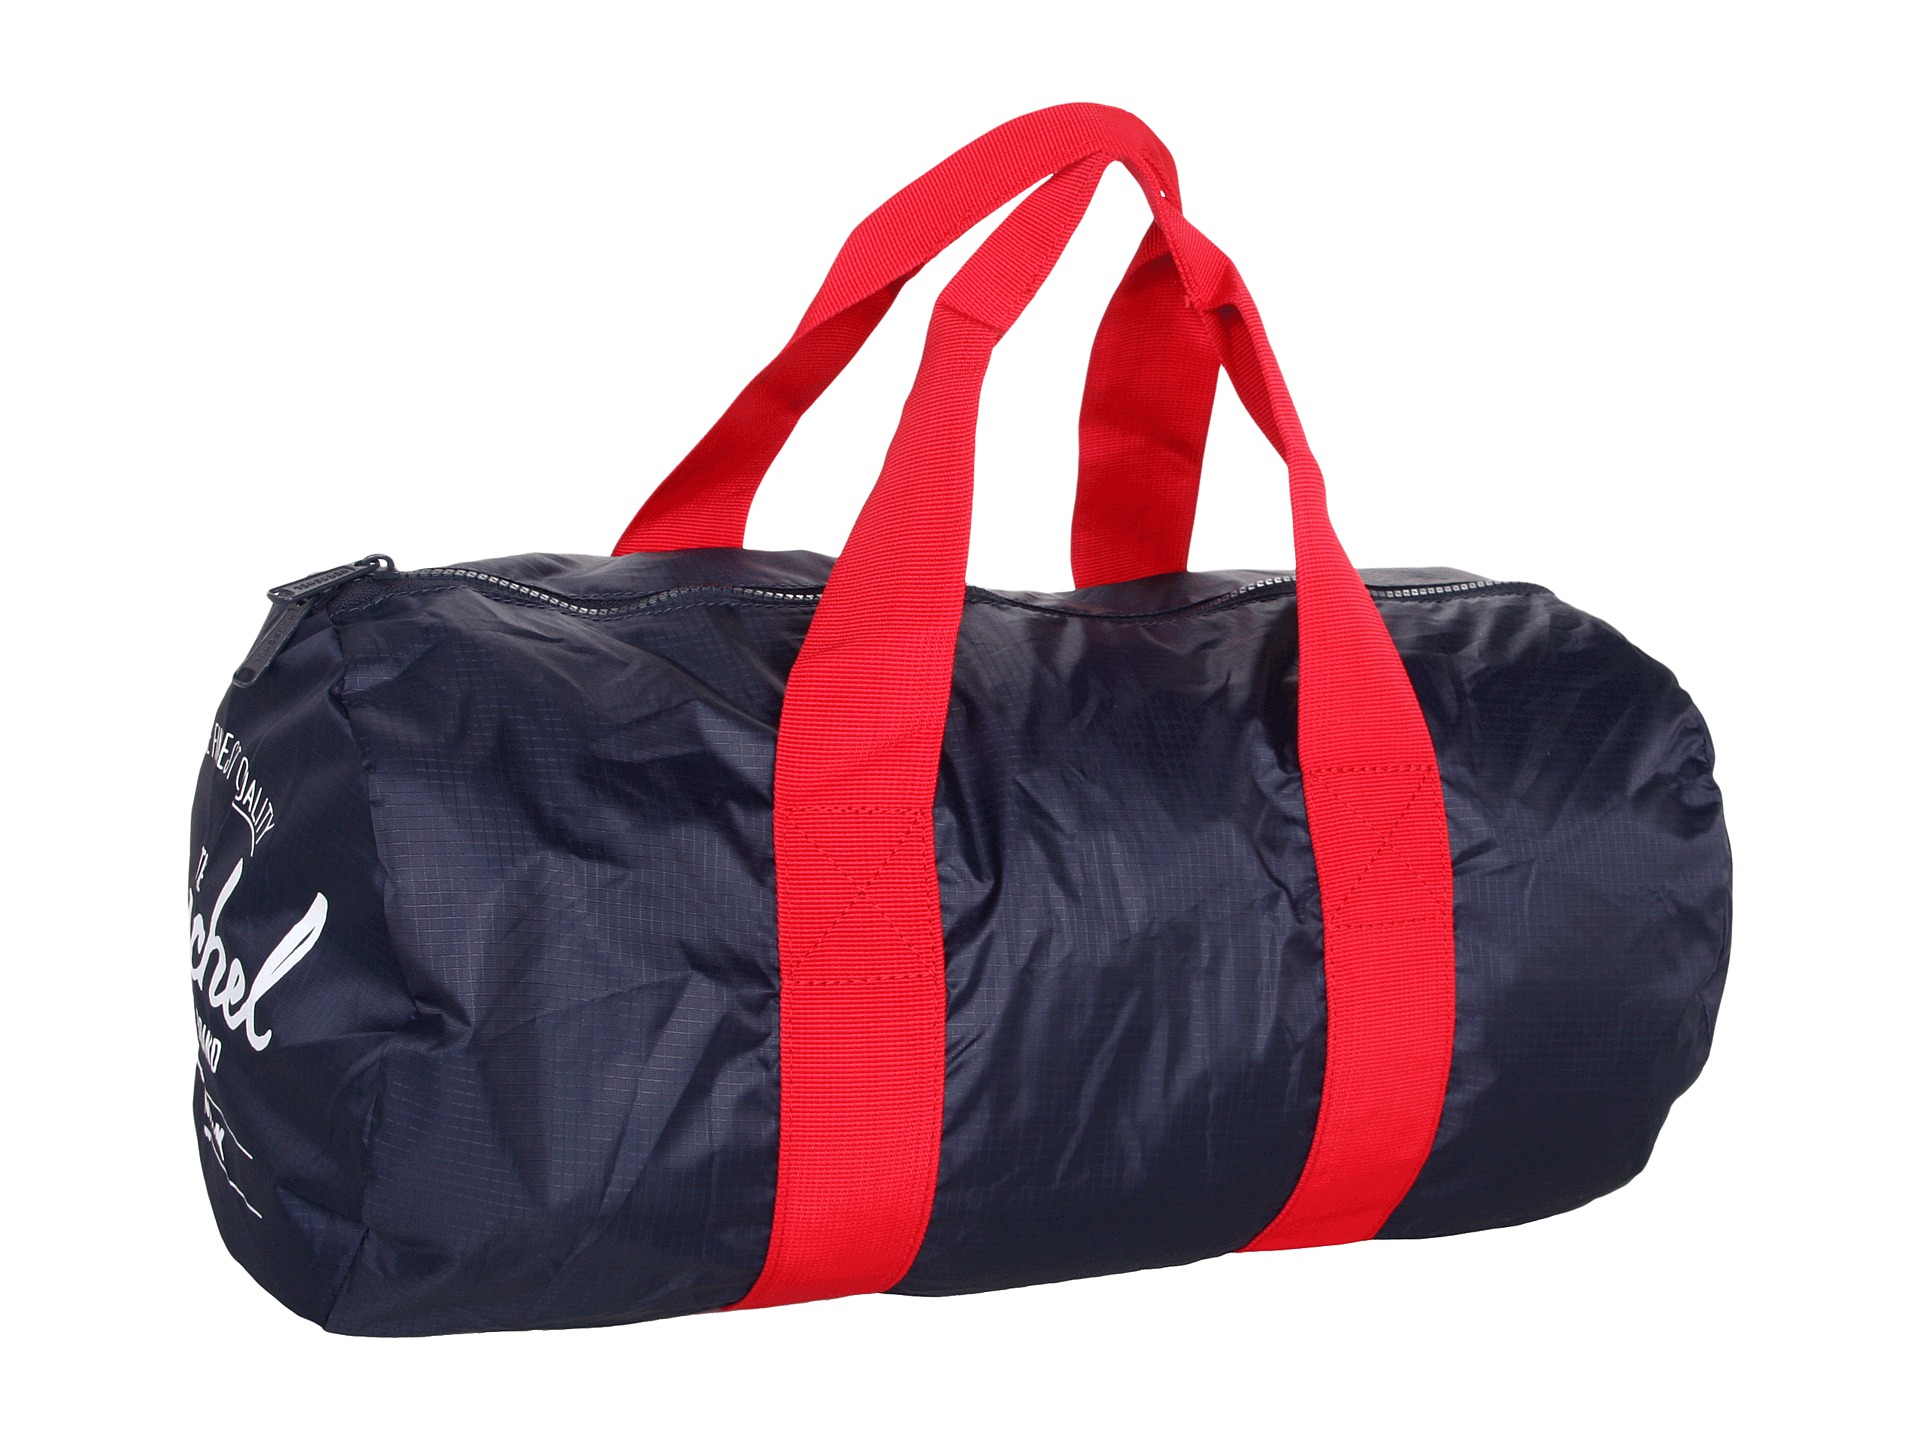 Herschel Duffle Bag | Herschel Back Packs | Canvas Duffel Bag